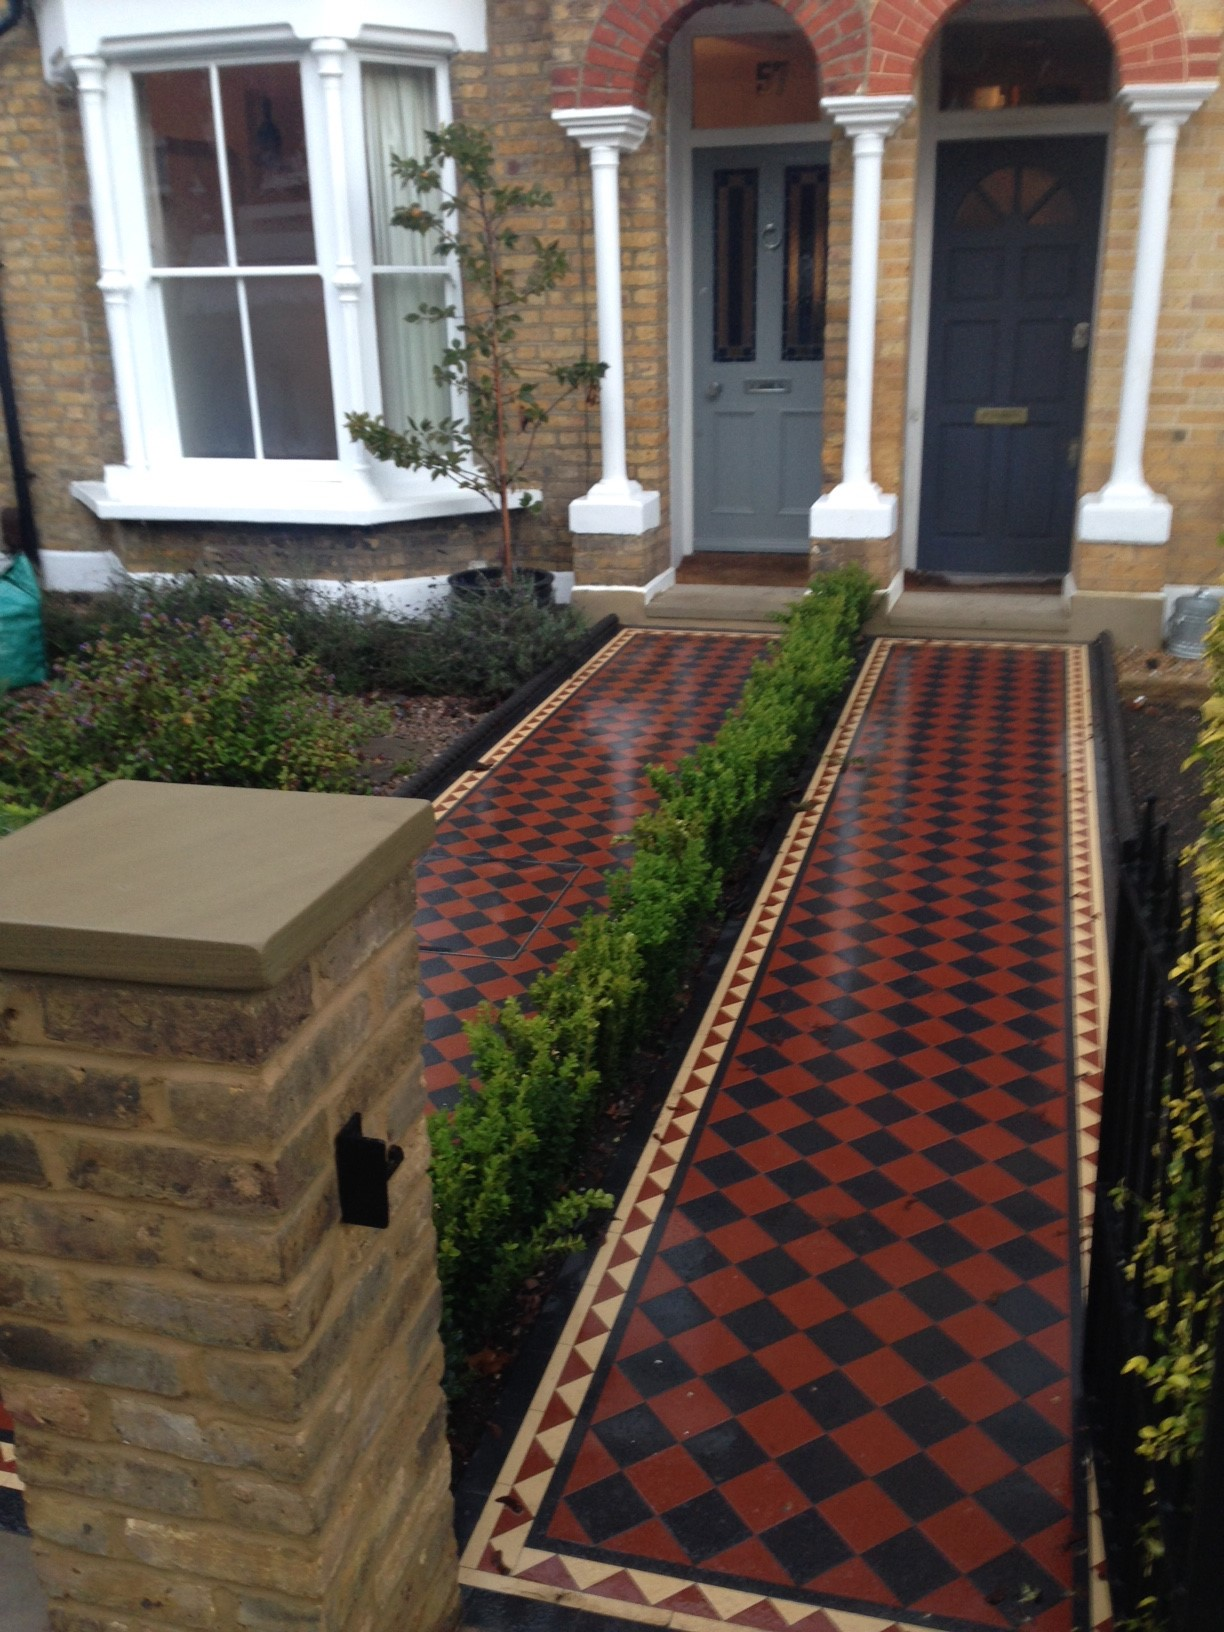 Brixton Herne Hill Victorian Mosaic Tile Path black and red tile with Yorkstone pier cap entrance stone and imperial yellow brick london stock wall (3)